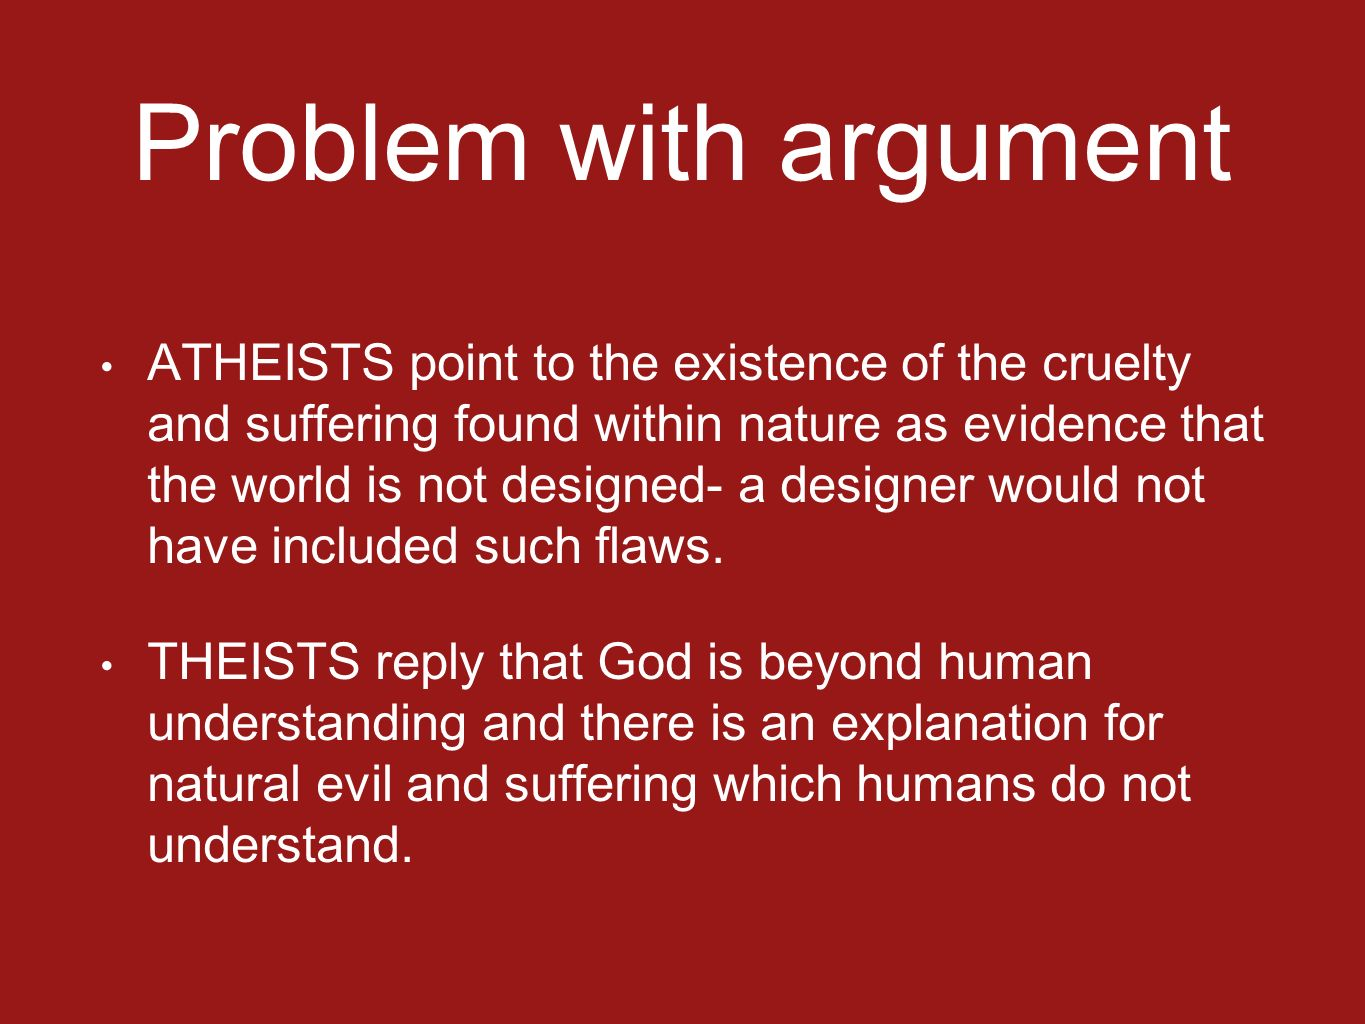 an argument on the source of evil and suffering in the world Judging from hume's idea about god, there is the belief in an existence of a divine being (god) who is referred to as omnipotent, omnipresent, omniscient, and good, and who is regarded as the root of all existence but we encounter the menace of evil we find suffering in the same world maduka in his book paradox of evil.